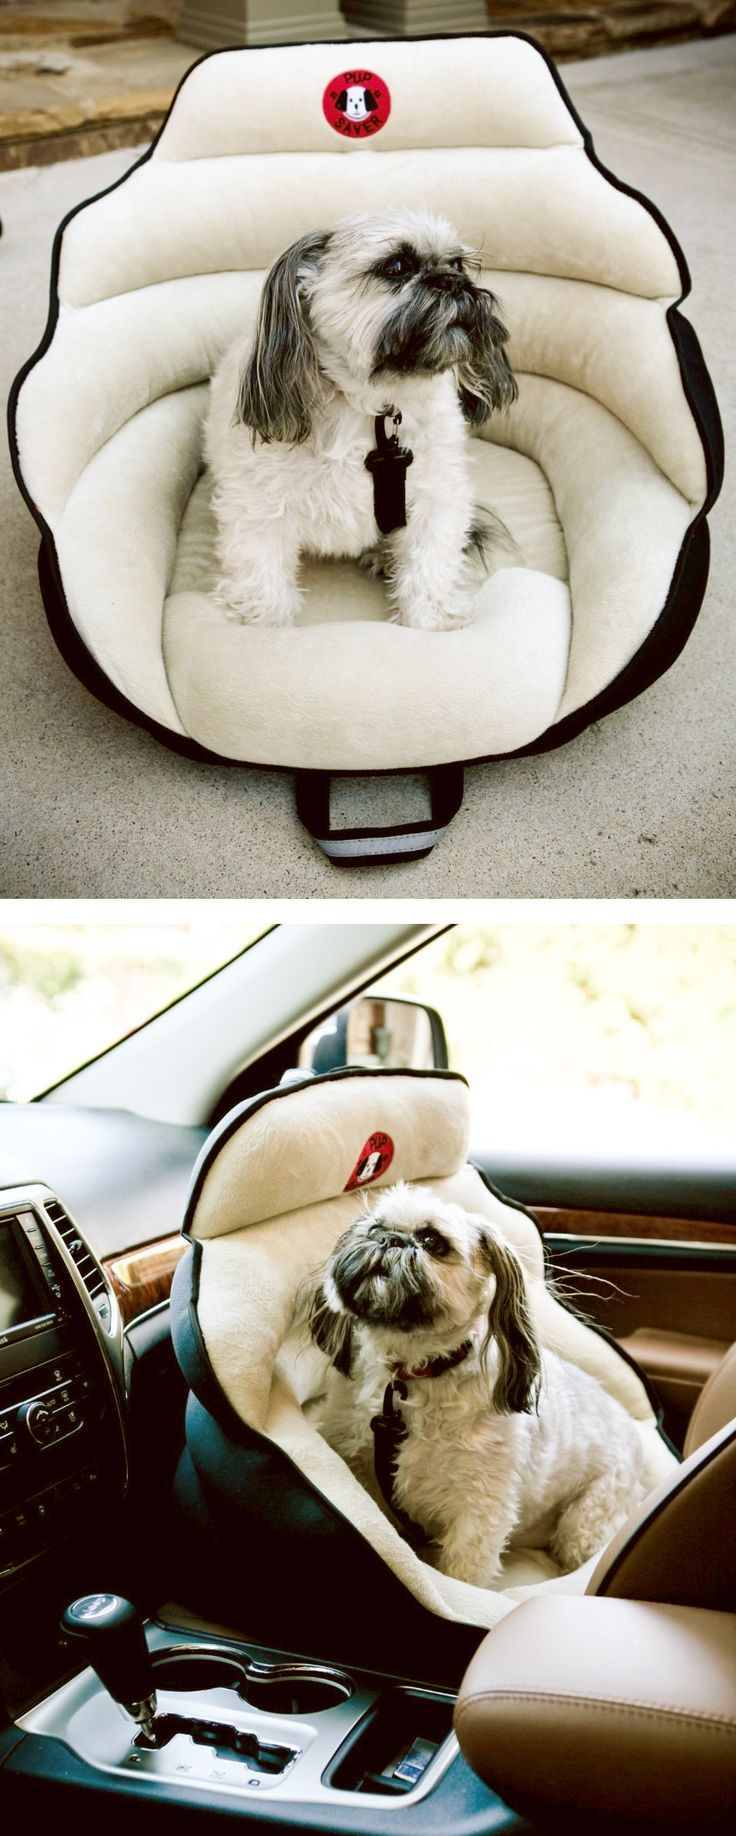 Yorkie haircuts and yorkie grooming resources rachael edwards - Puppy Carseat Http Www Diyhomeproject Net Puppy Carseat